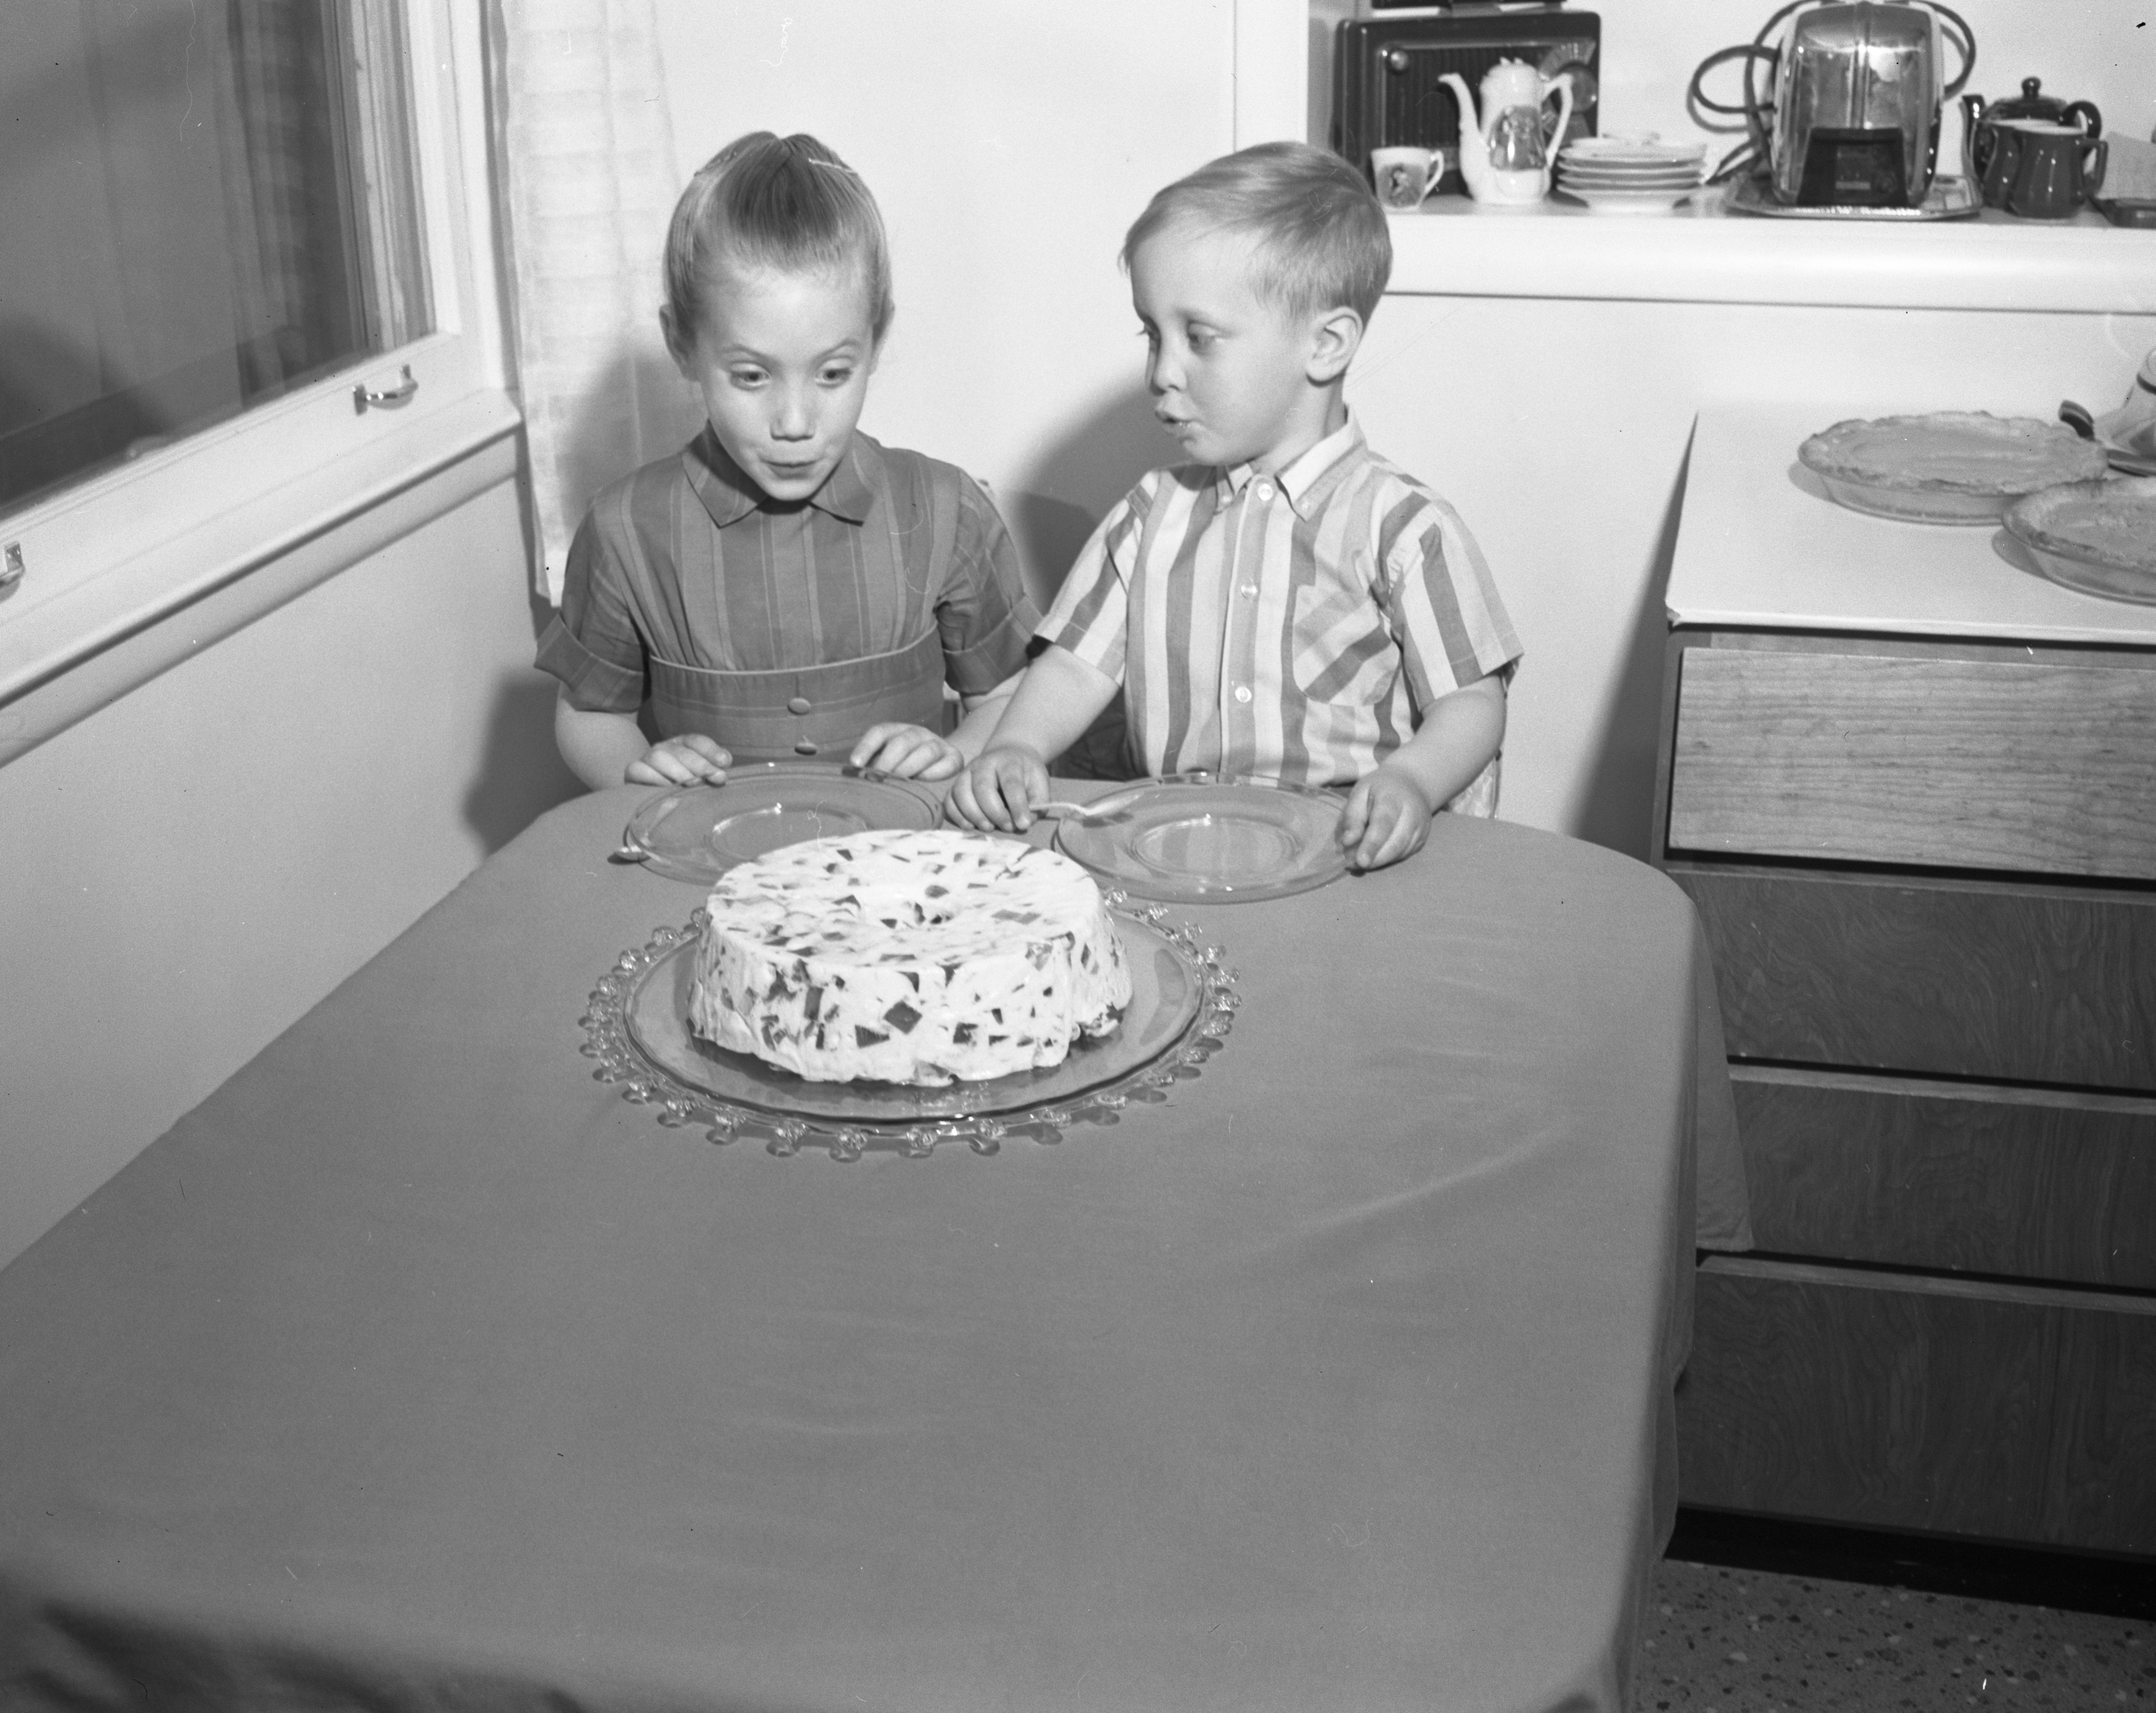 Peggy And Scott Hanley Wait For Dessert, May 1963 image